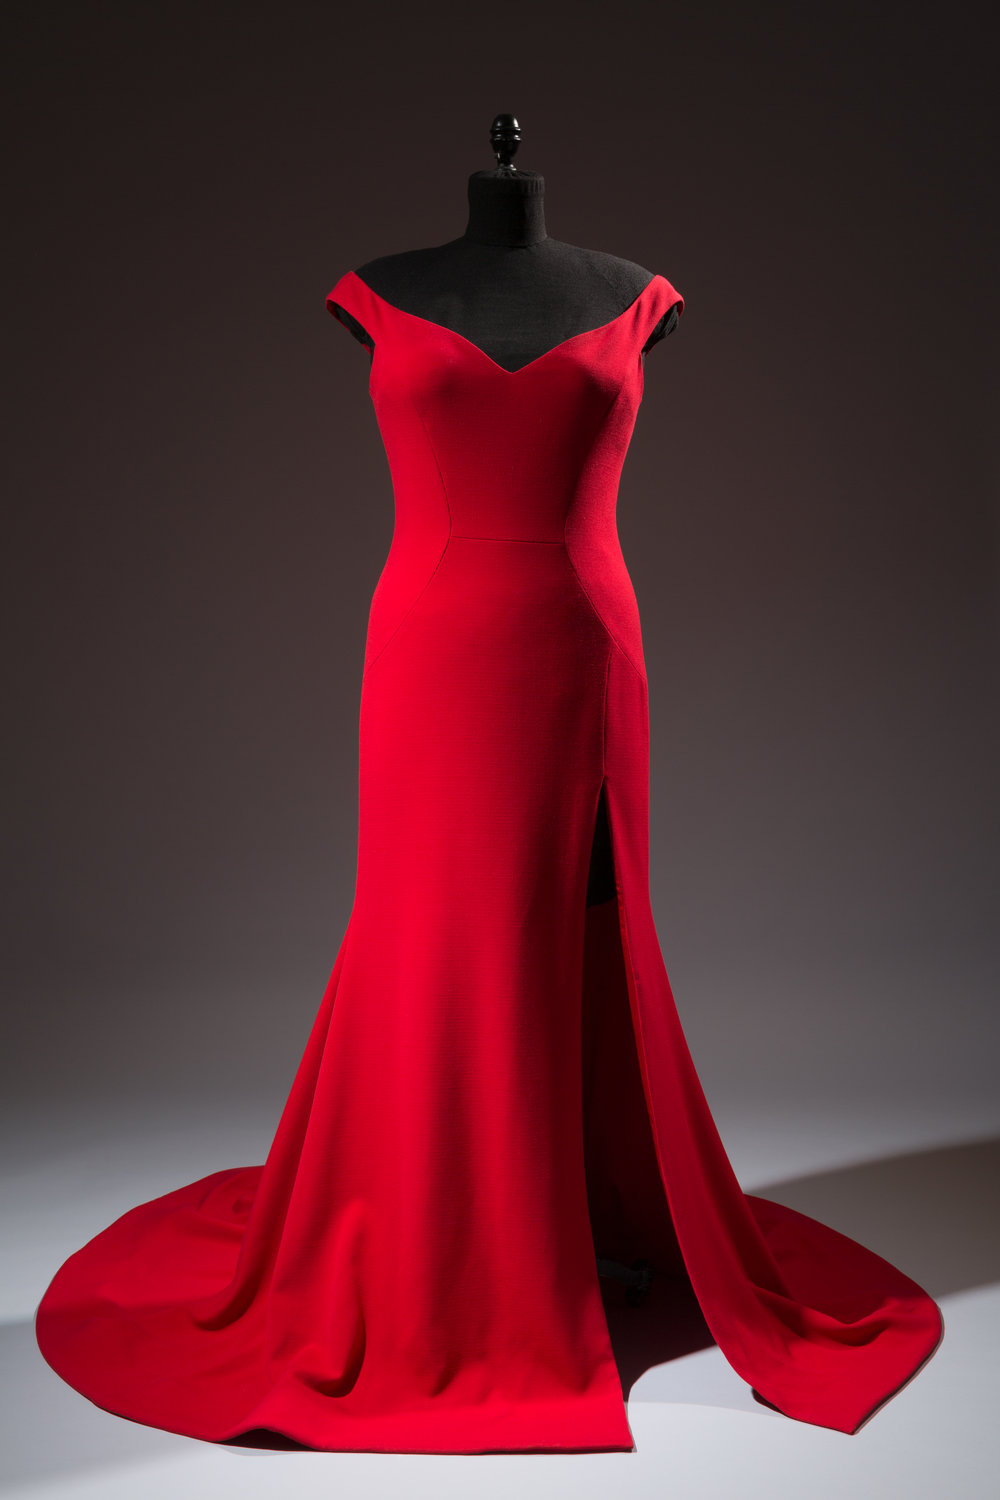 Christian Siriano, custom dress for actress Leslie Jones, faille crepe, 2016, USA, Gift of Christian Siriano. Photograph courtesy The Museum at FIT.